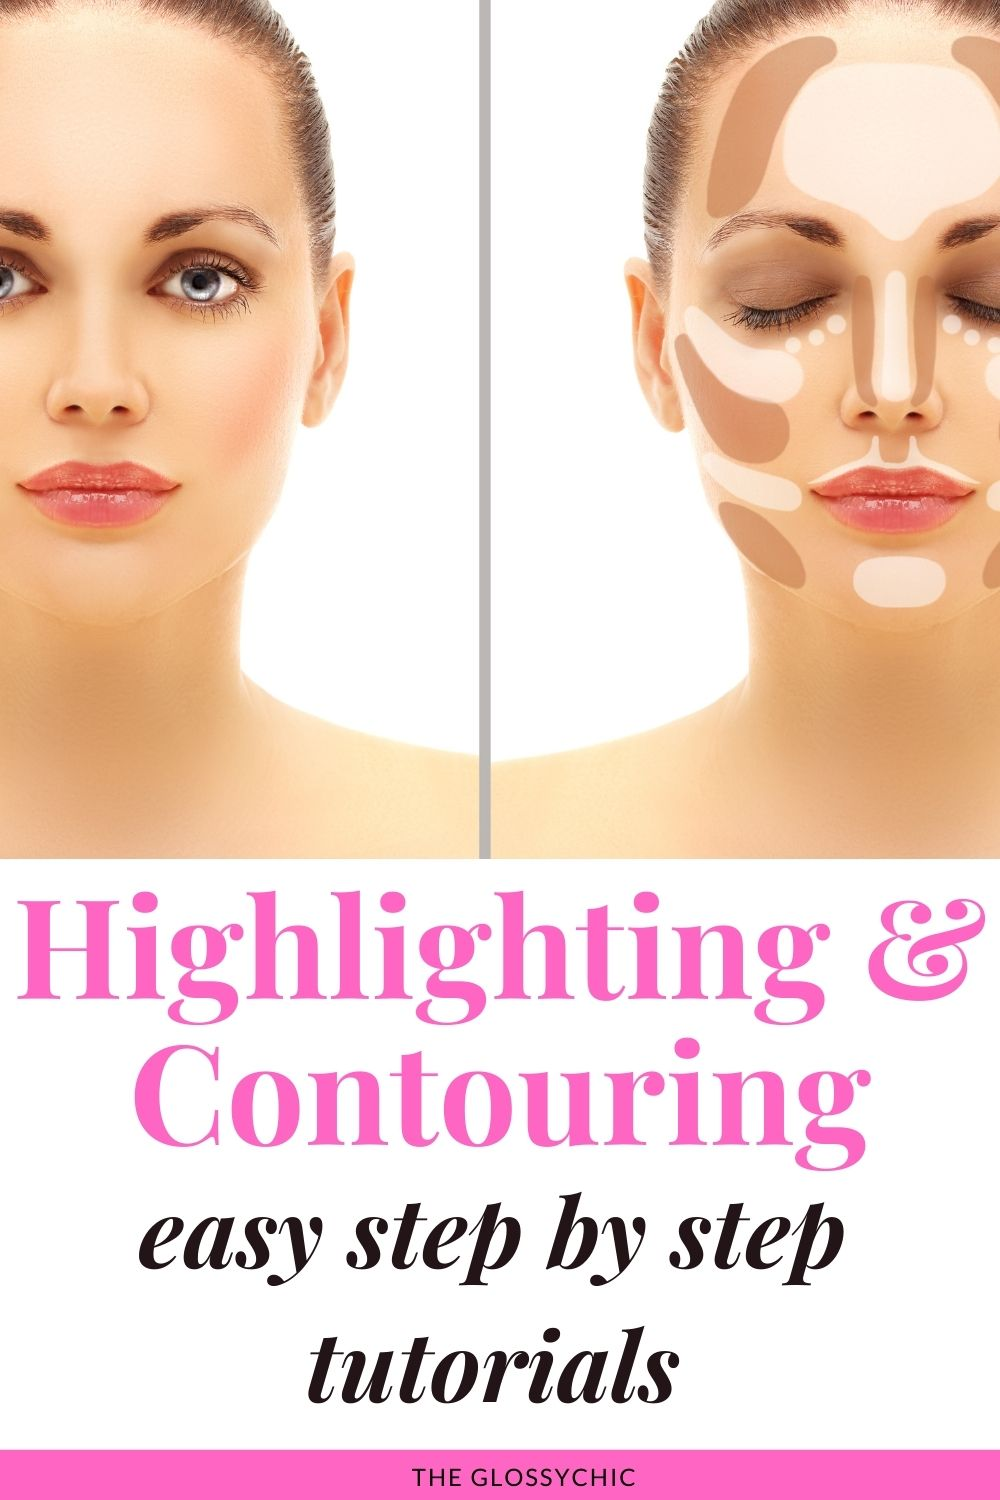 contouring and highlighting, easy step by step tutorials